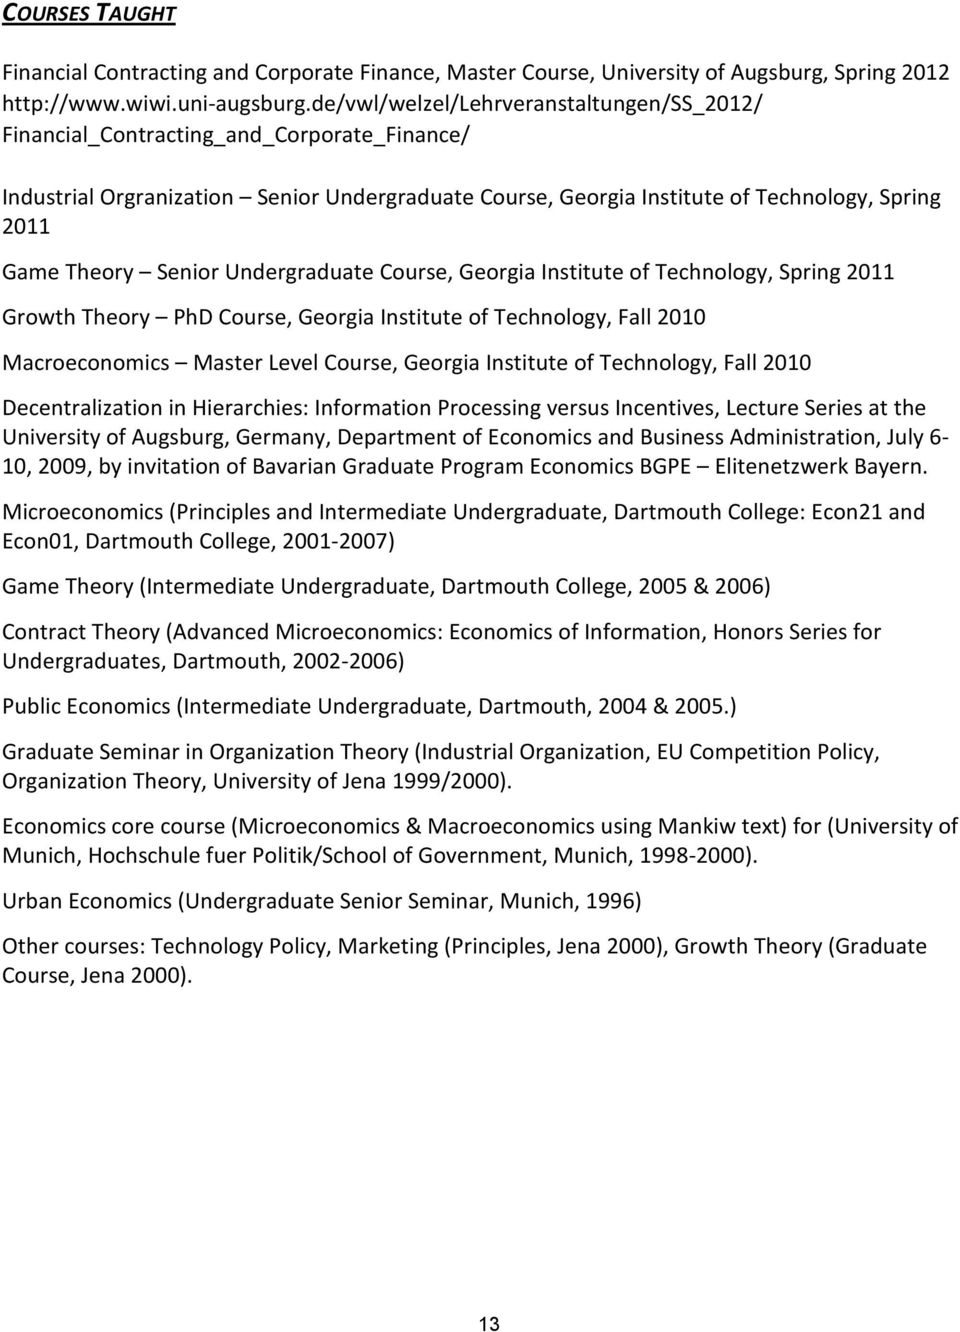 Senior Undergraduate Course, Georgia Institute of Technology, Spring 2011 Growth Theory PhD Course, Georgia Institute of Technology, Fall 2010 Macroeconomics Master Level Course, Georgia Institute of